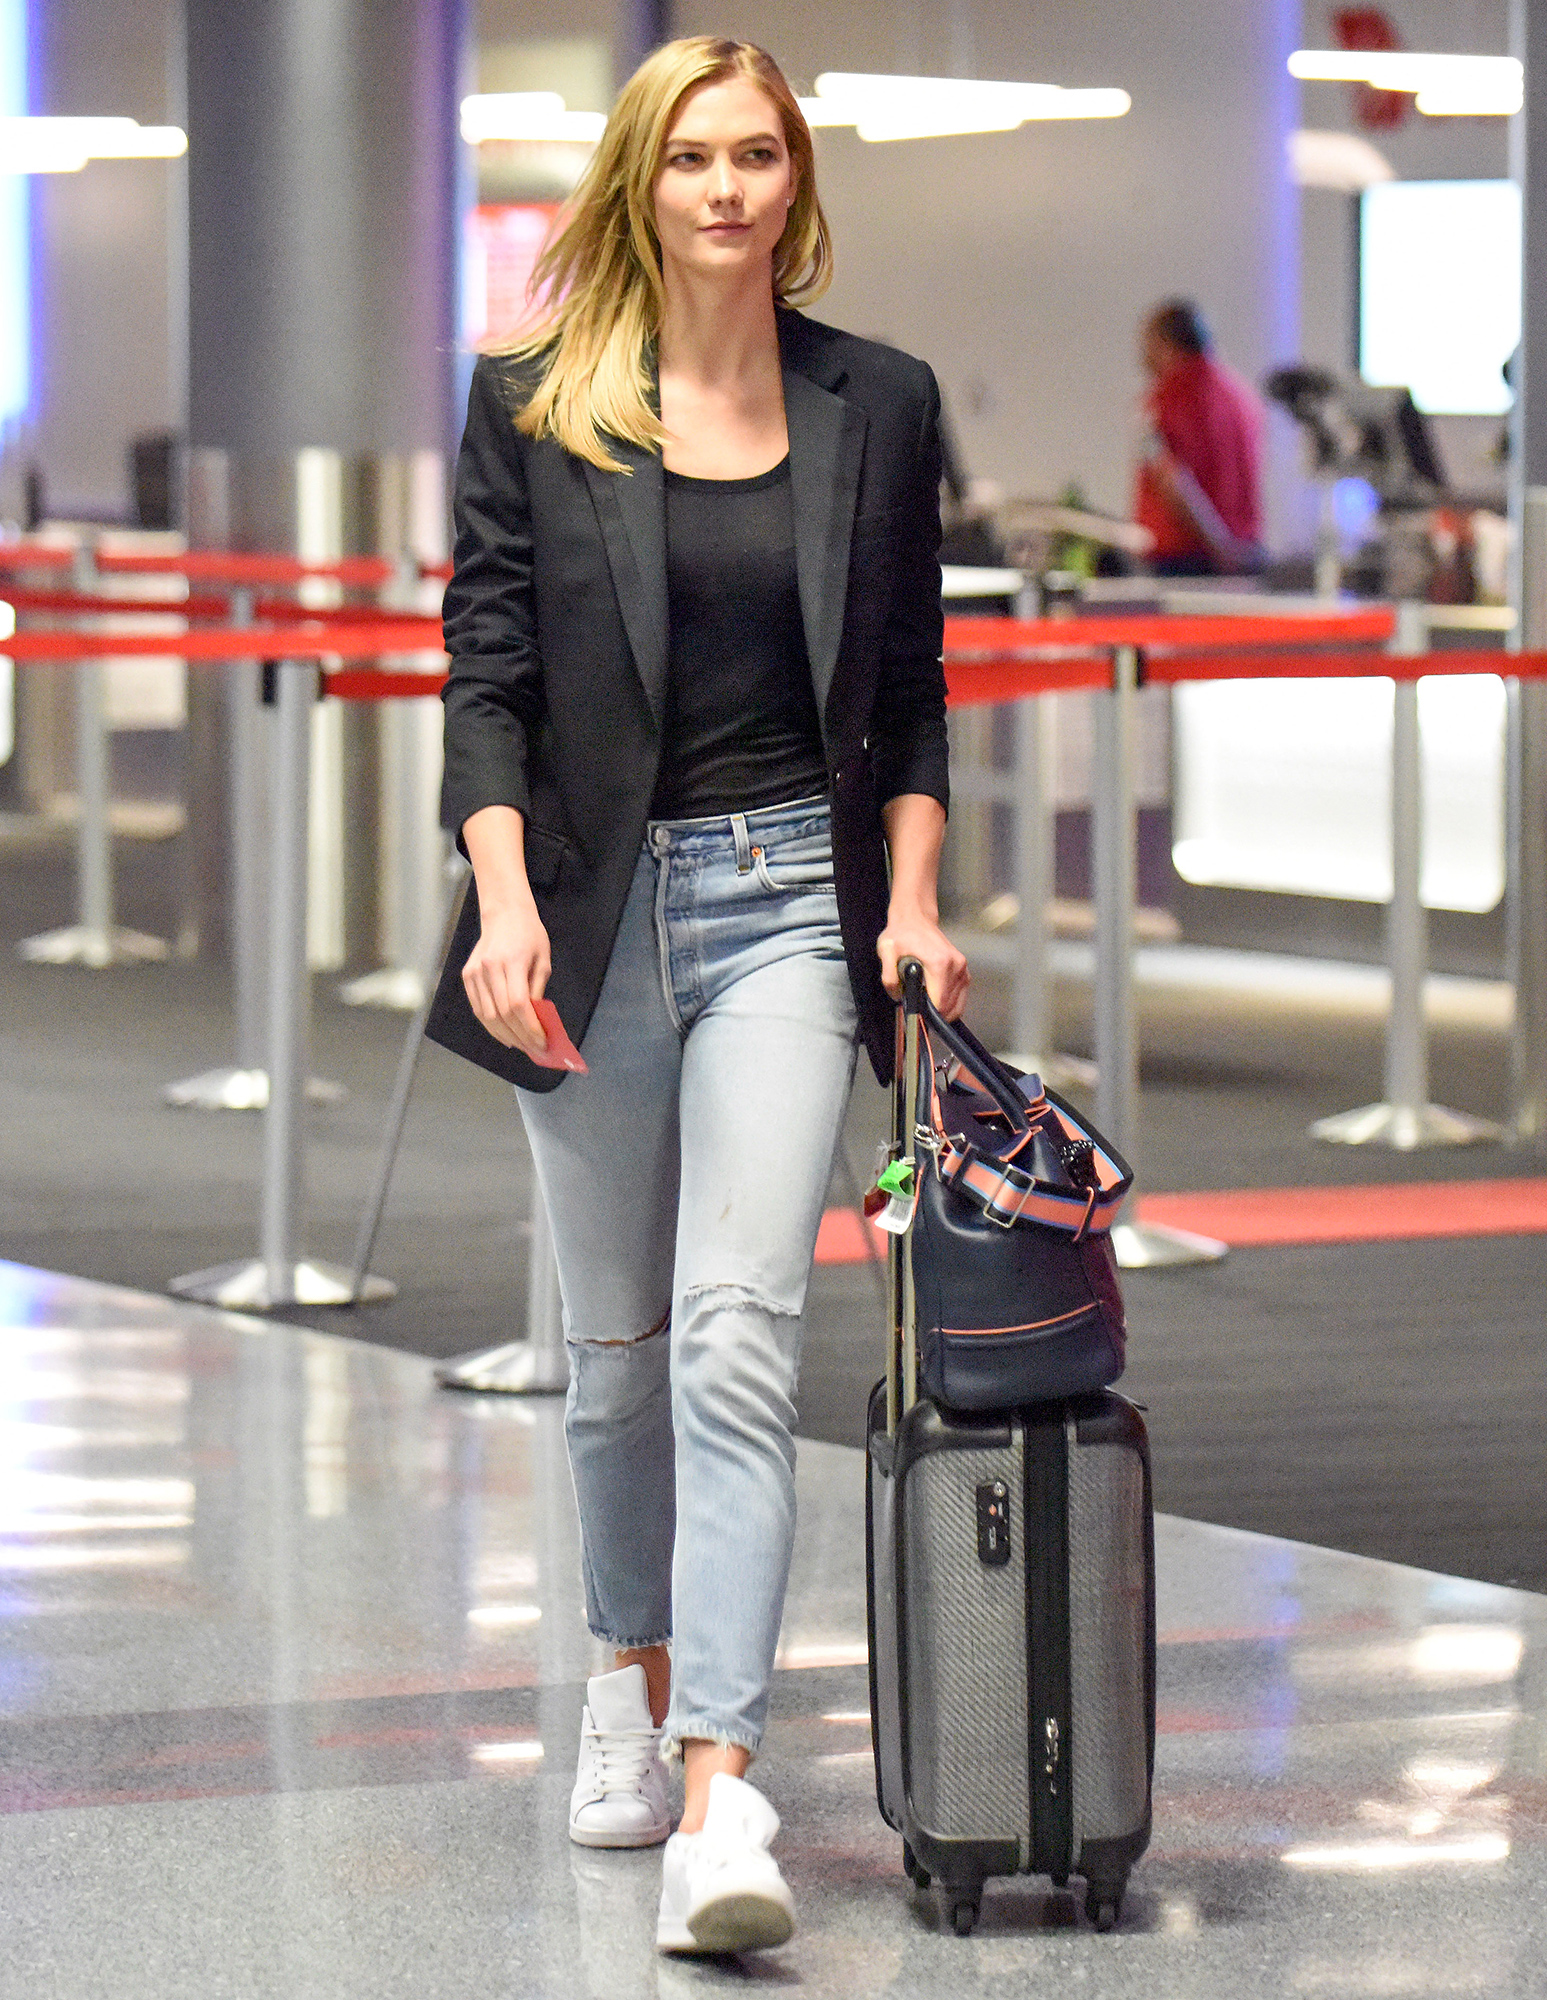 EXCLUSIVE: Karlie Kloss showcases her natural beauty at LAX Airport